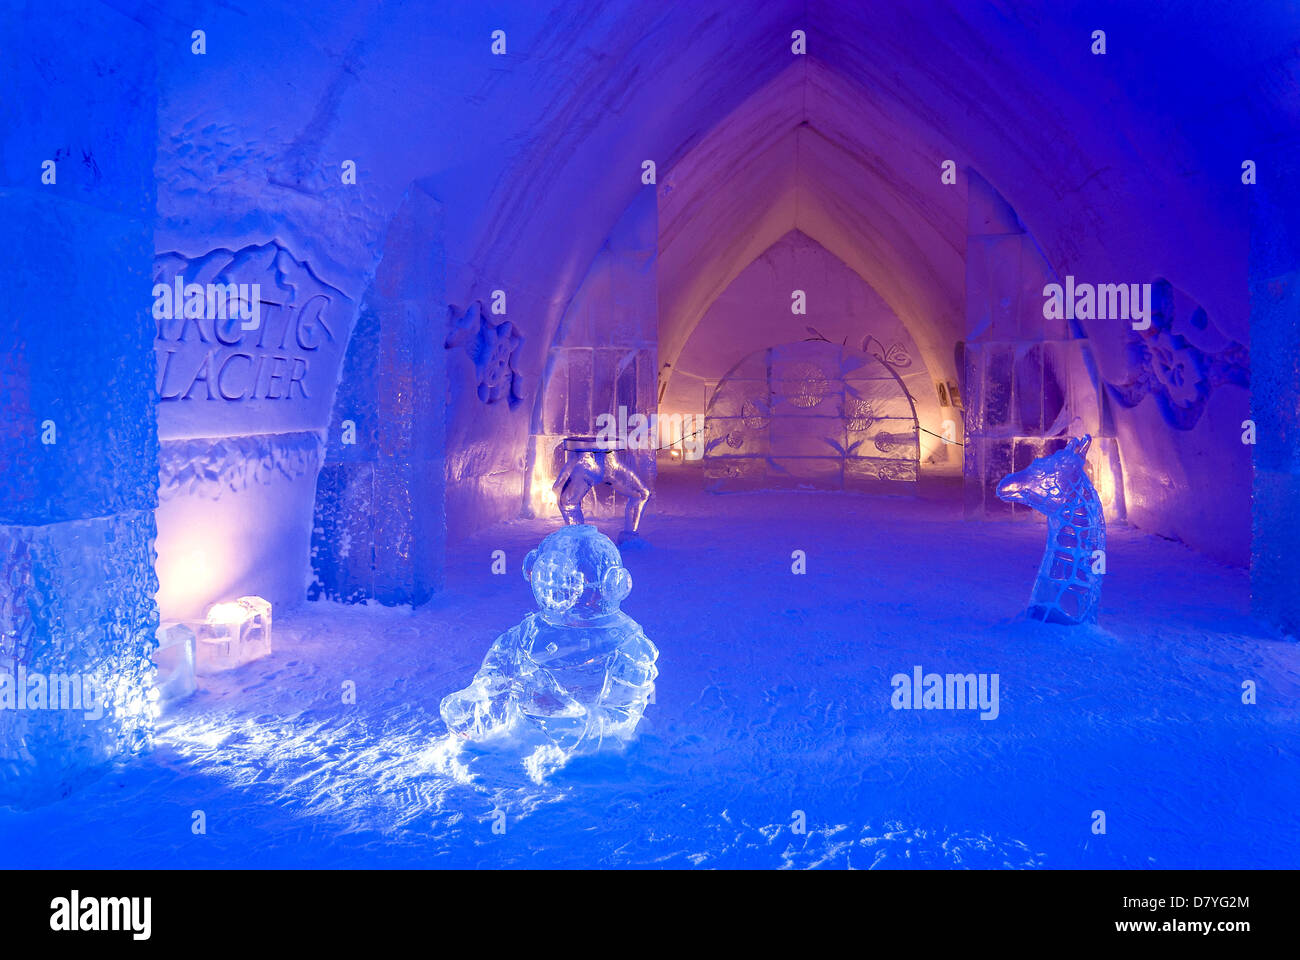 Ice Hotel Quebec Canada on ice hotels in usa, montreal quebec canada, travel quebec canada, plains of abraham quebec canada, christmas in quebec canada, map of quebec canada, ice hotel quebec winter carnival, northern lights quebec canada, winter quebec canada, ice village canada, fishing quebec canada, tourist attractions in winnipeg canada, province of quebec canada, luxury hotels in quebec canada, quebec quebec canada, banff springs hotel alberta canada, ice hotel in quebec, quebec city canada, gaspe peninsula quebec canada, ice hotel quebec 2014,